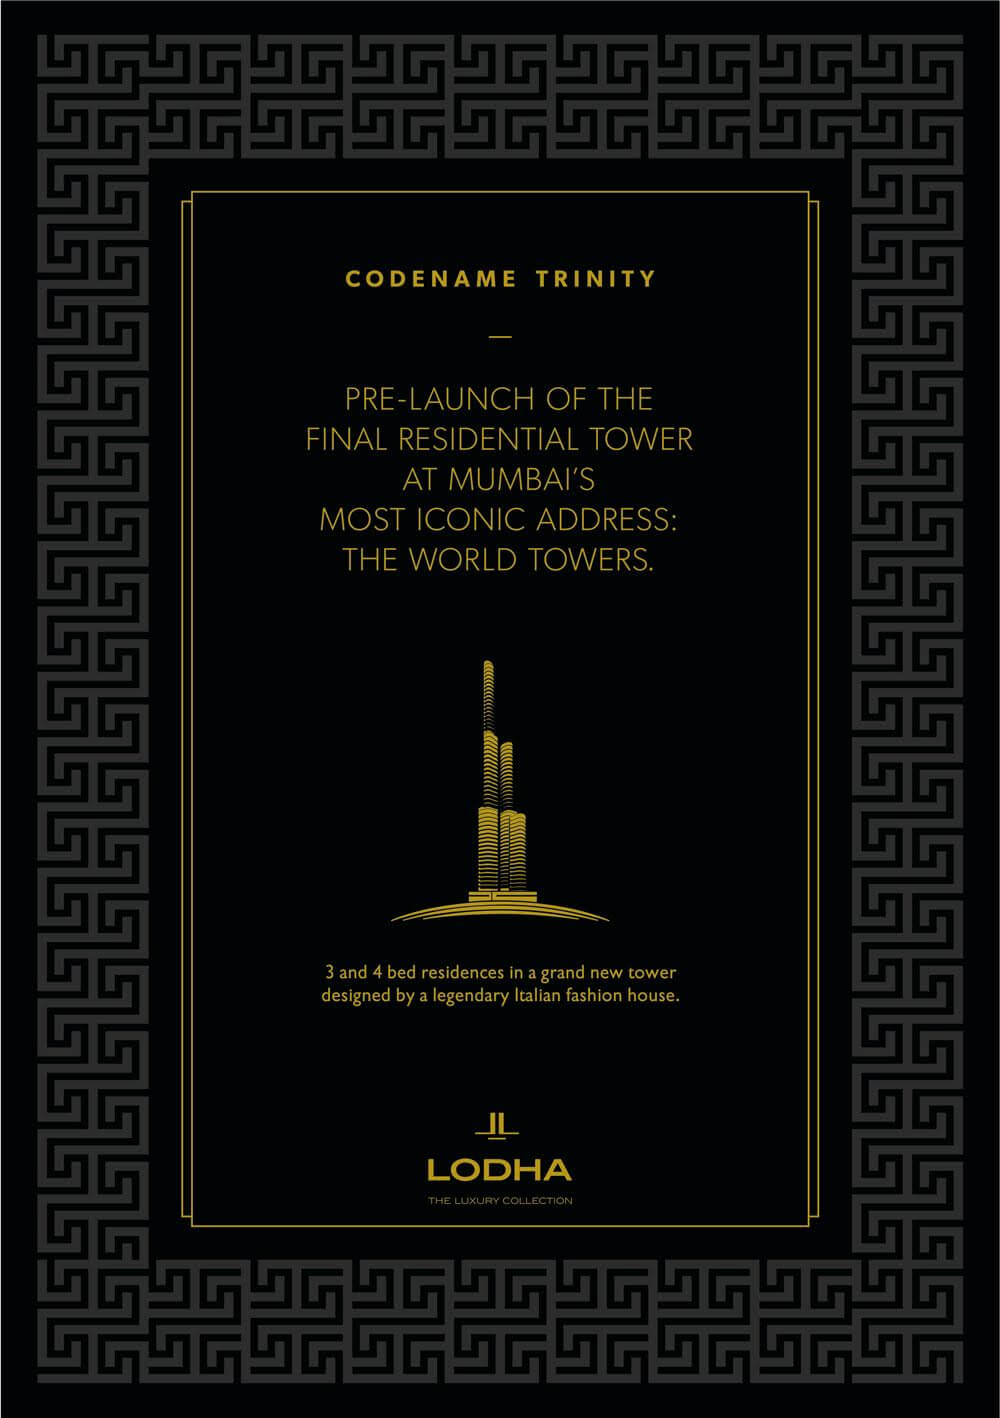 Pre-launch of the final residential tower at Mumbai's most iconic address: The World Towers